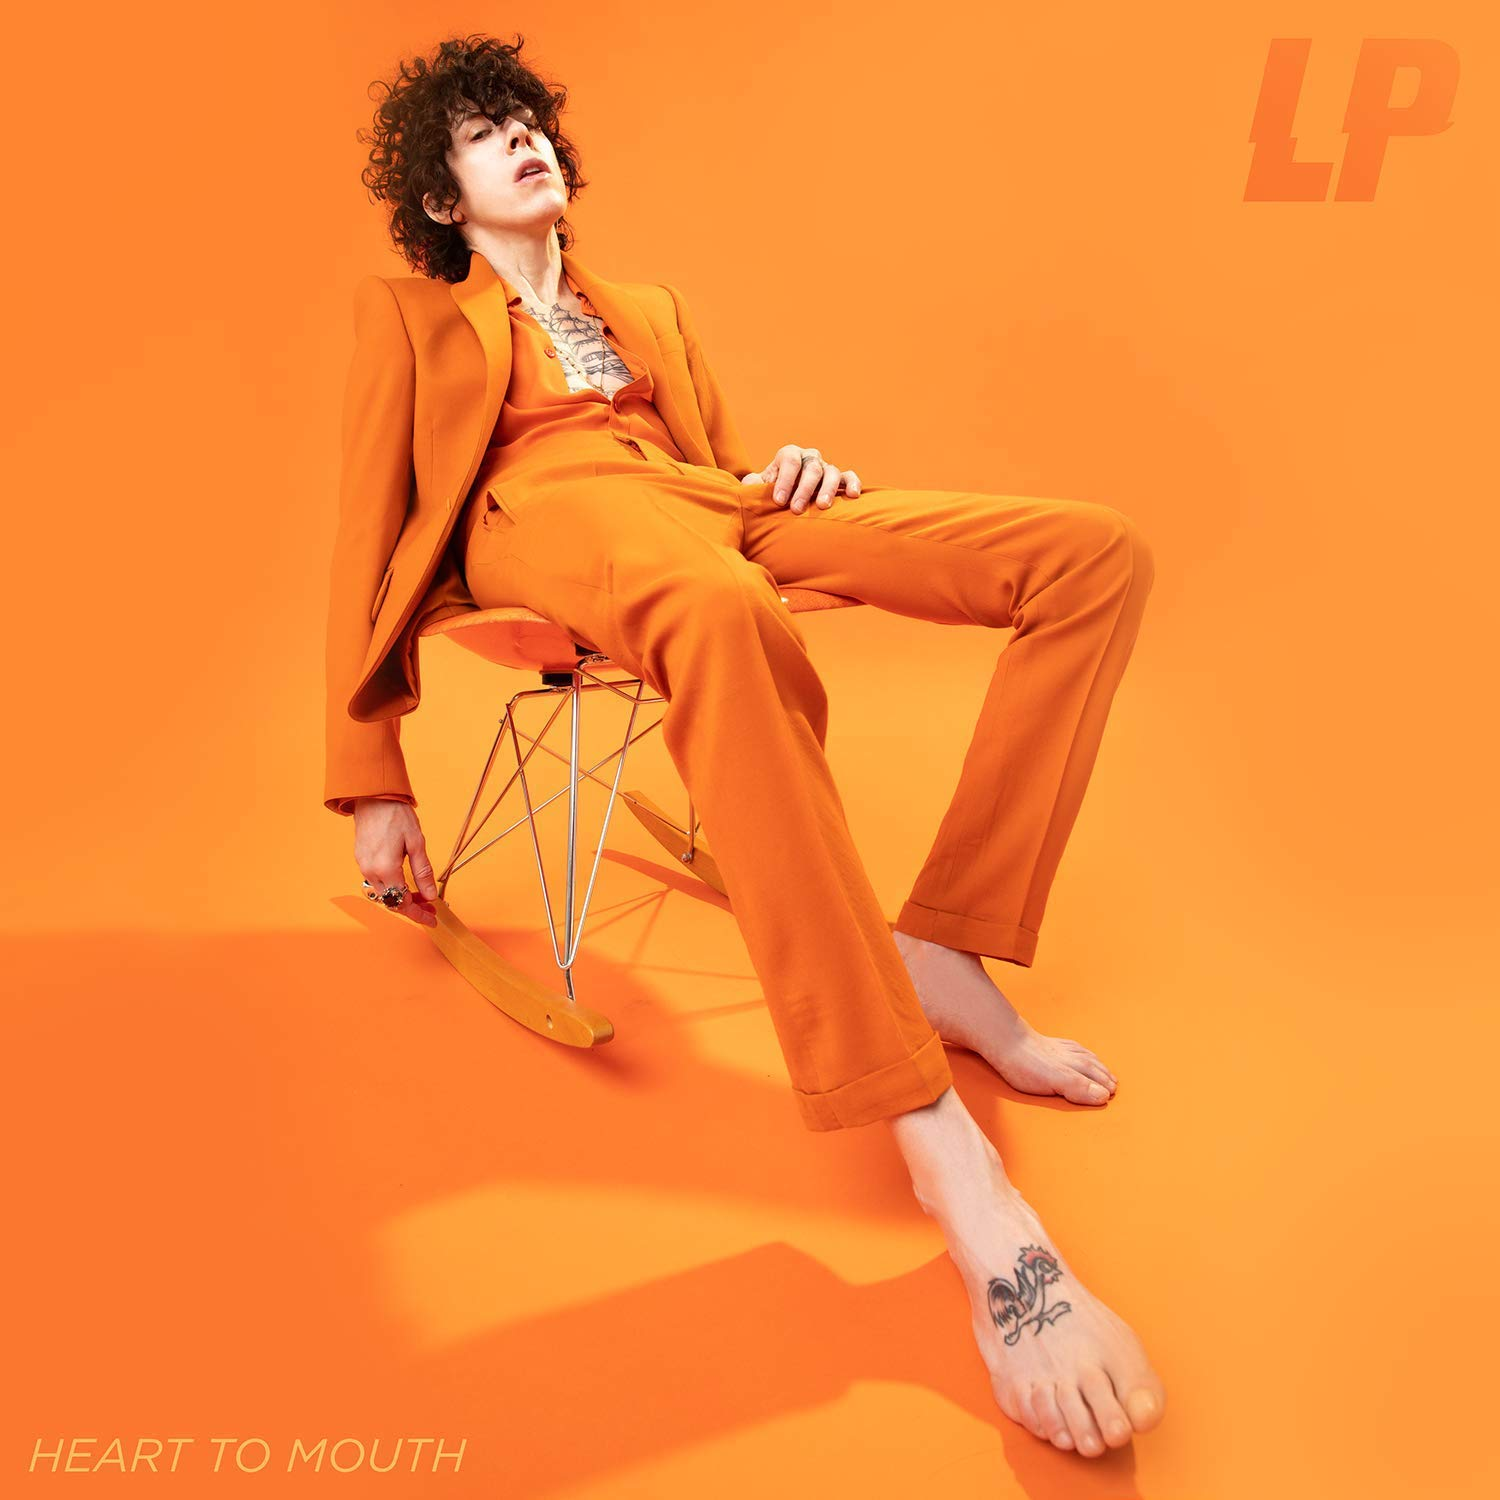 Vinilo : LP - Heart To Mouth (LP Vinyl)